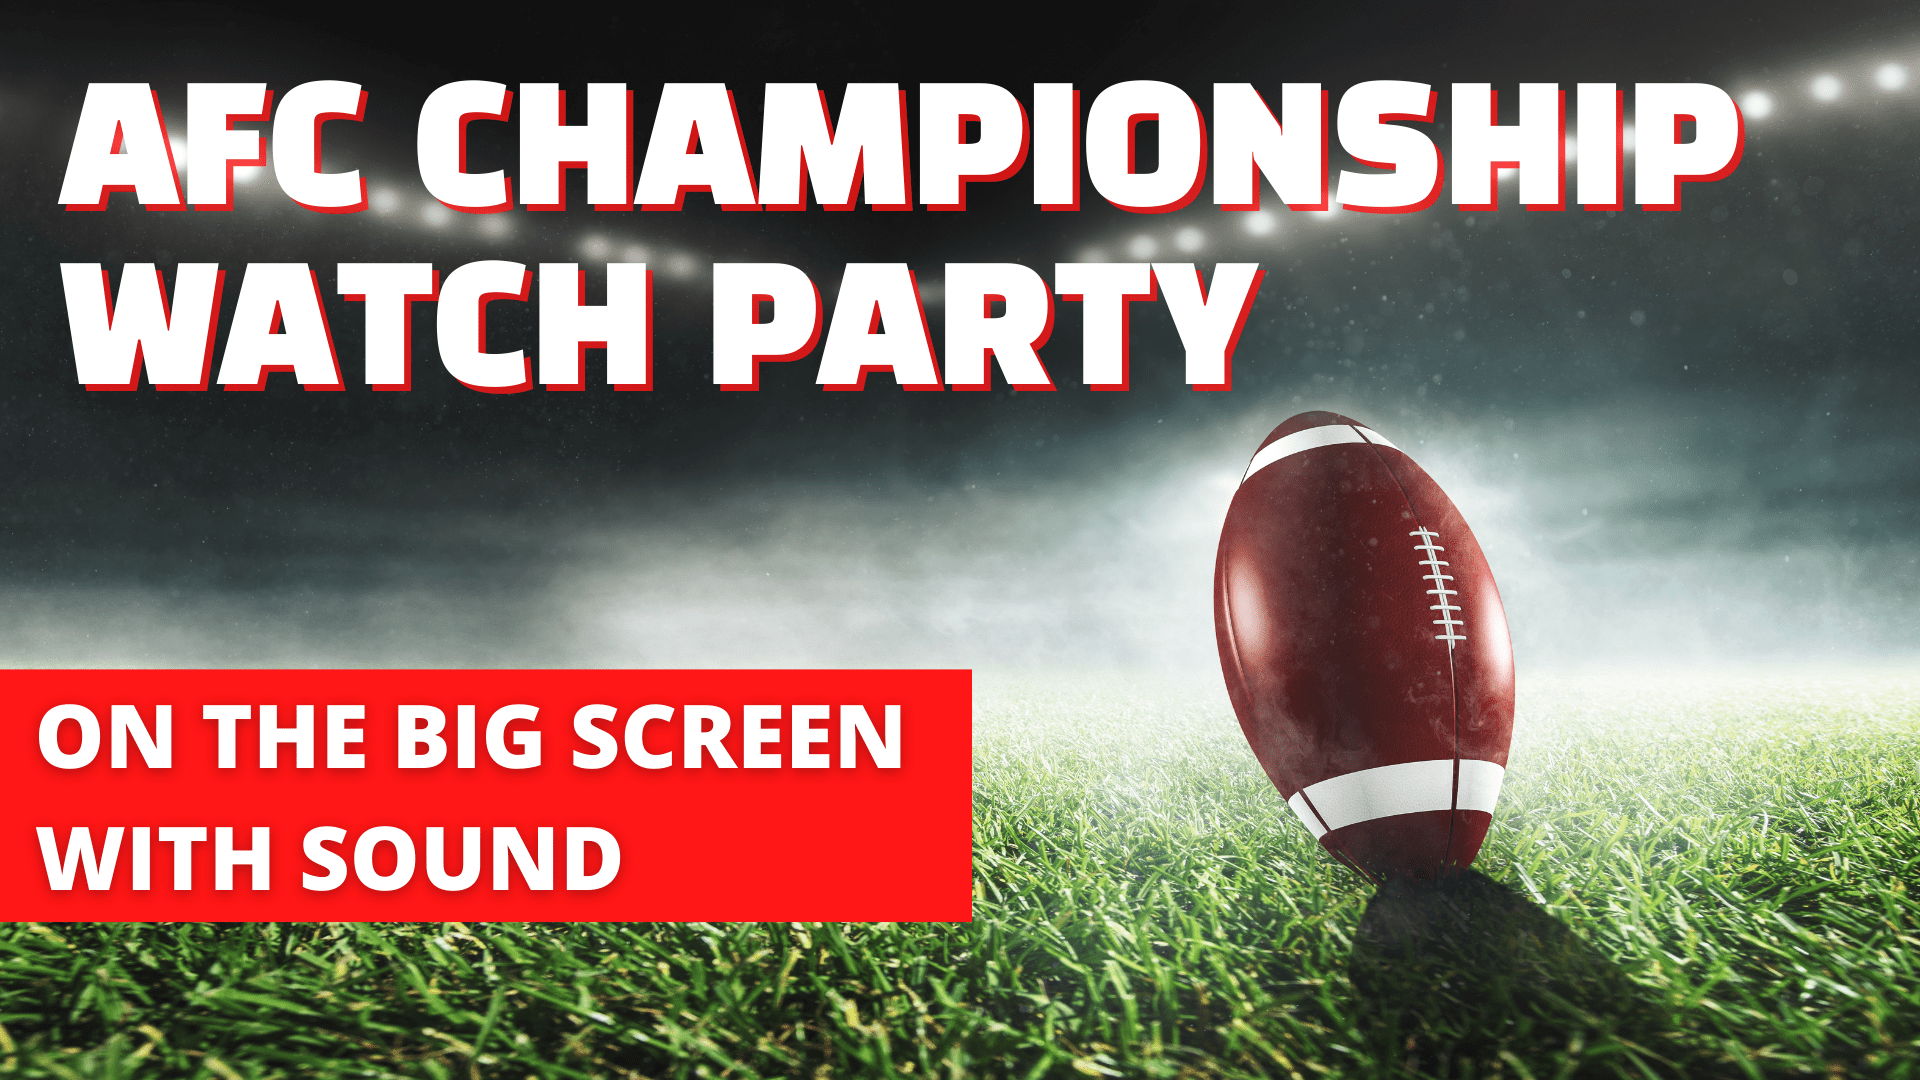 Promo image of AFC Championship Watch Party